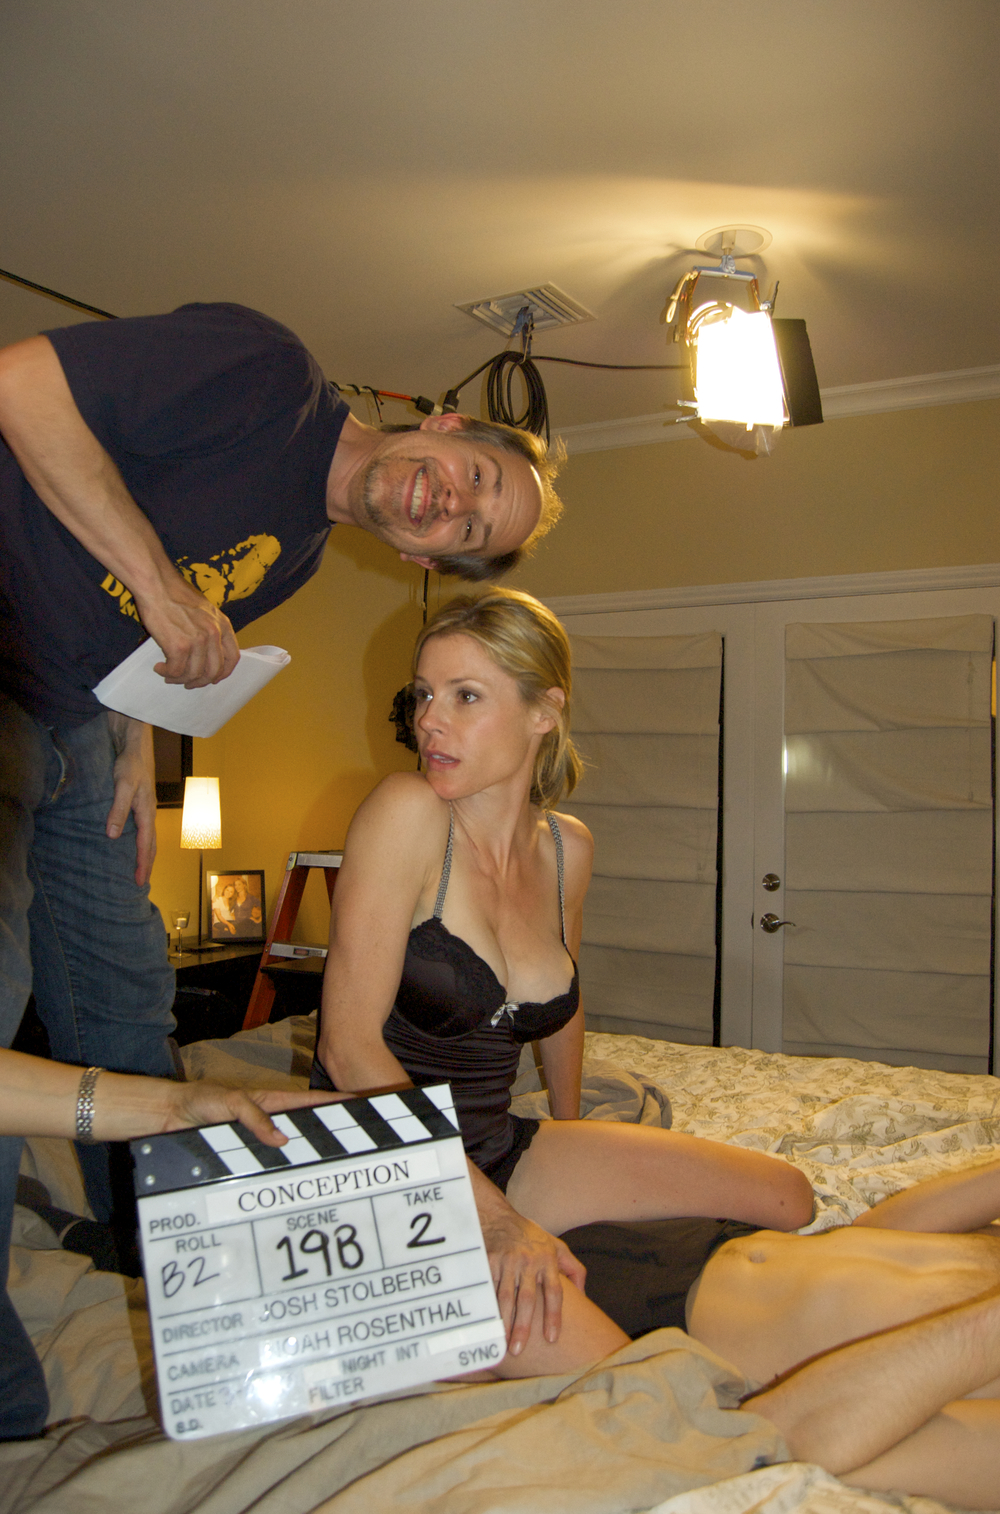 With Julie Bowen in Conception